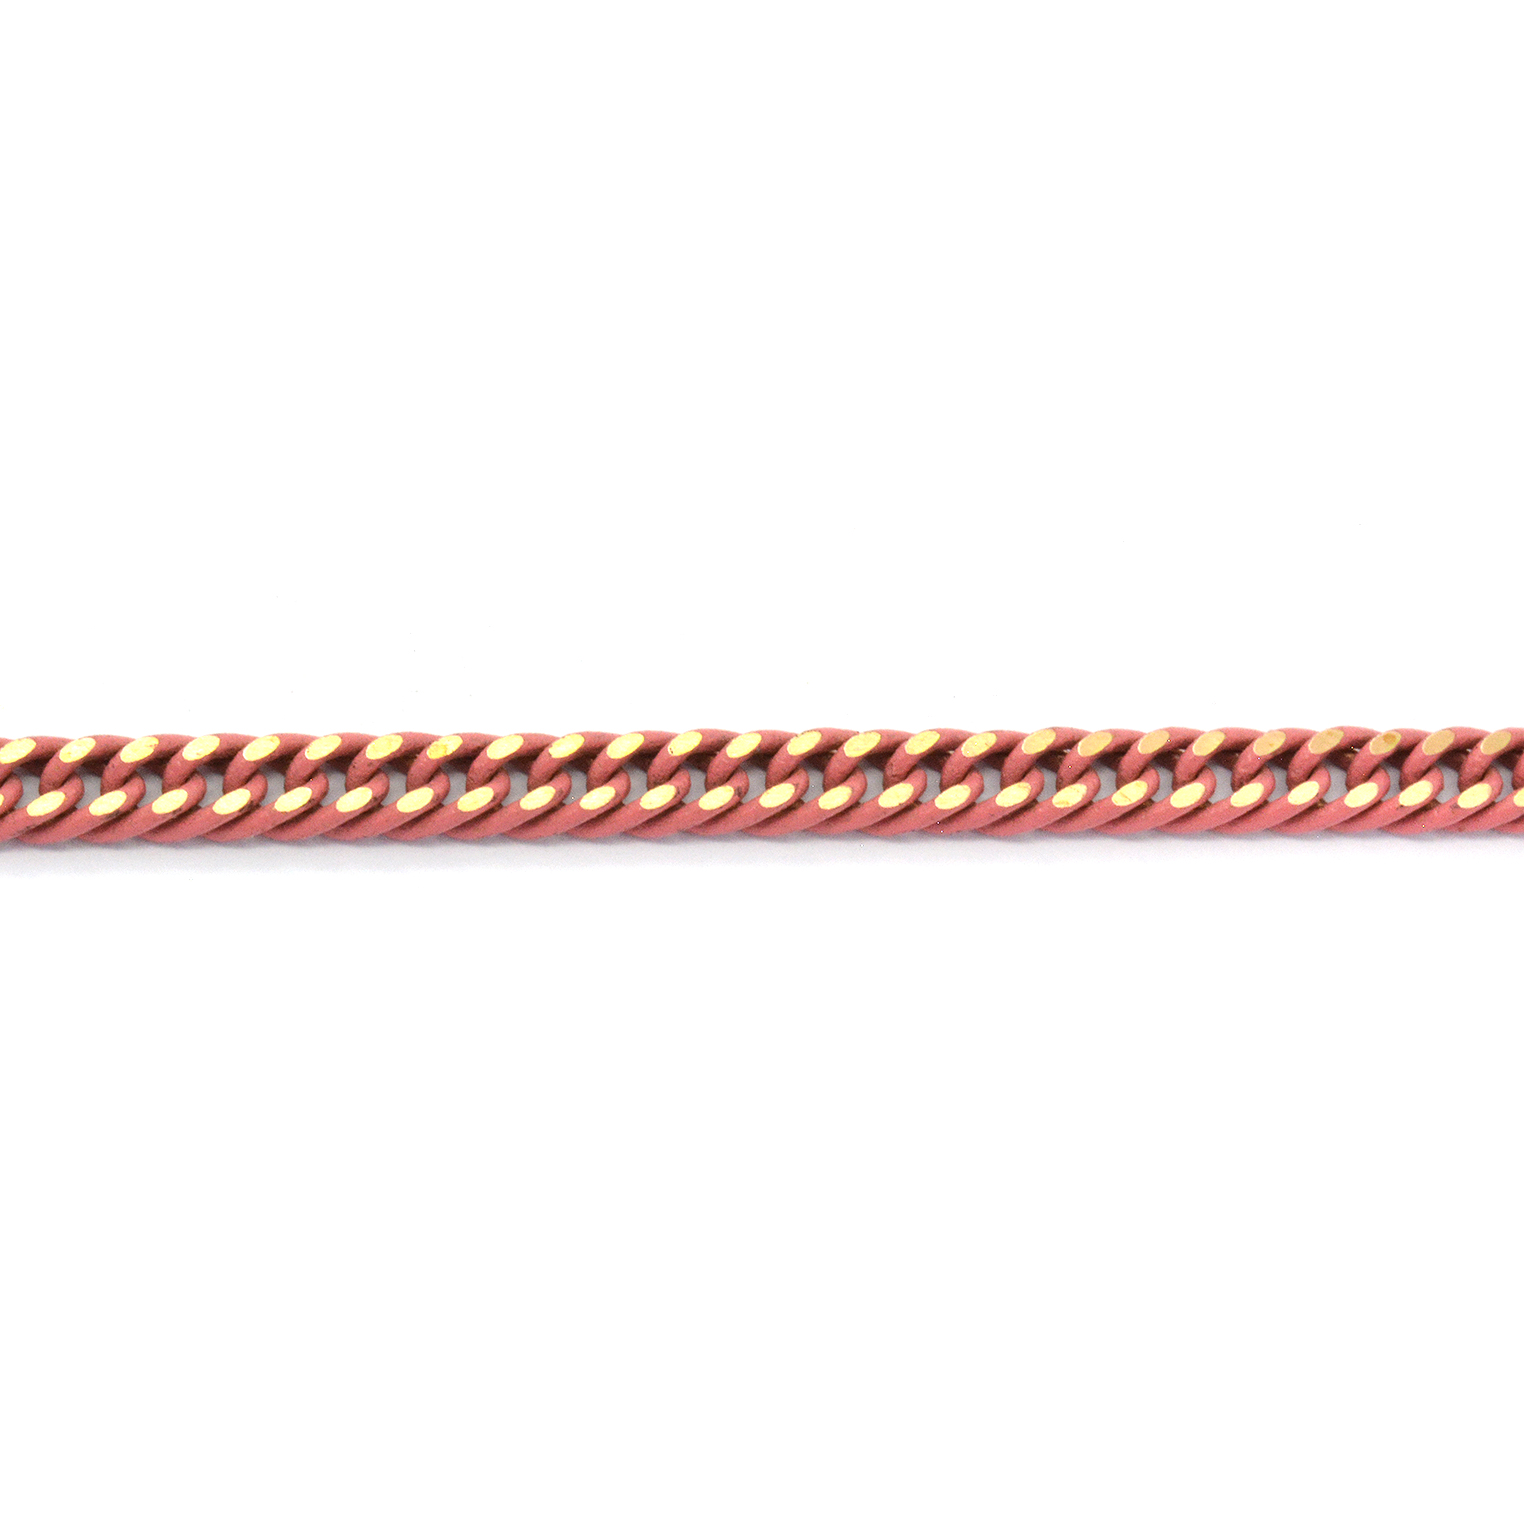 Polished pink enamel stainless steel curb (gourmette) chain 4mm